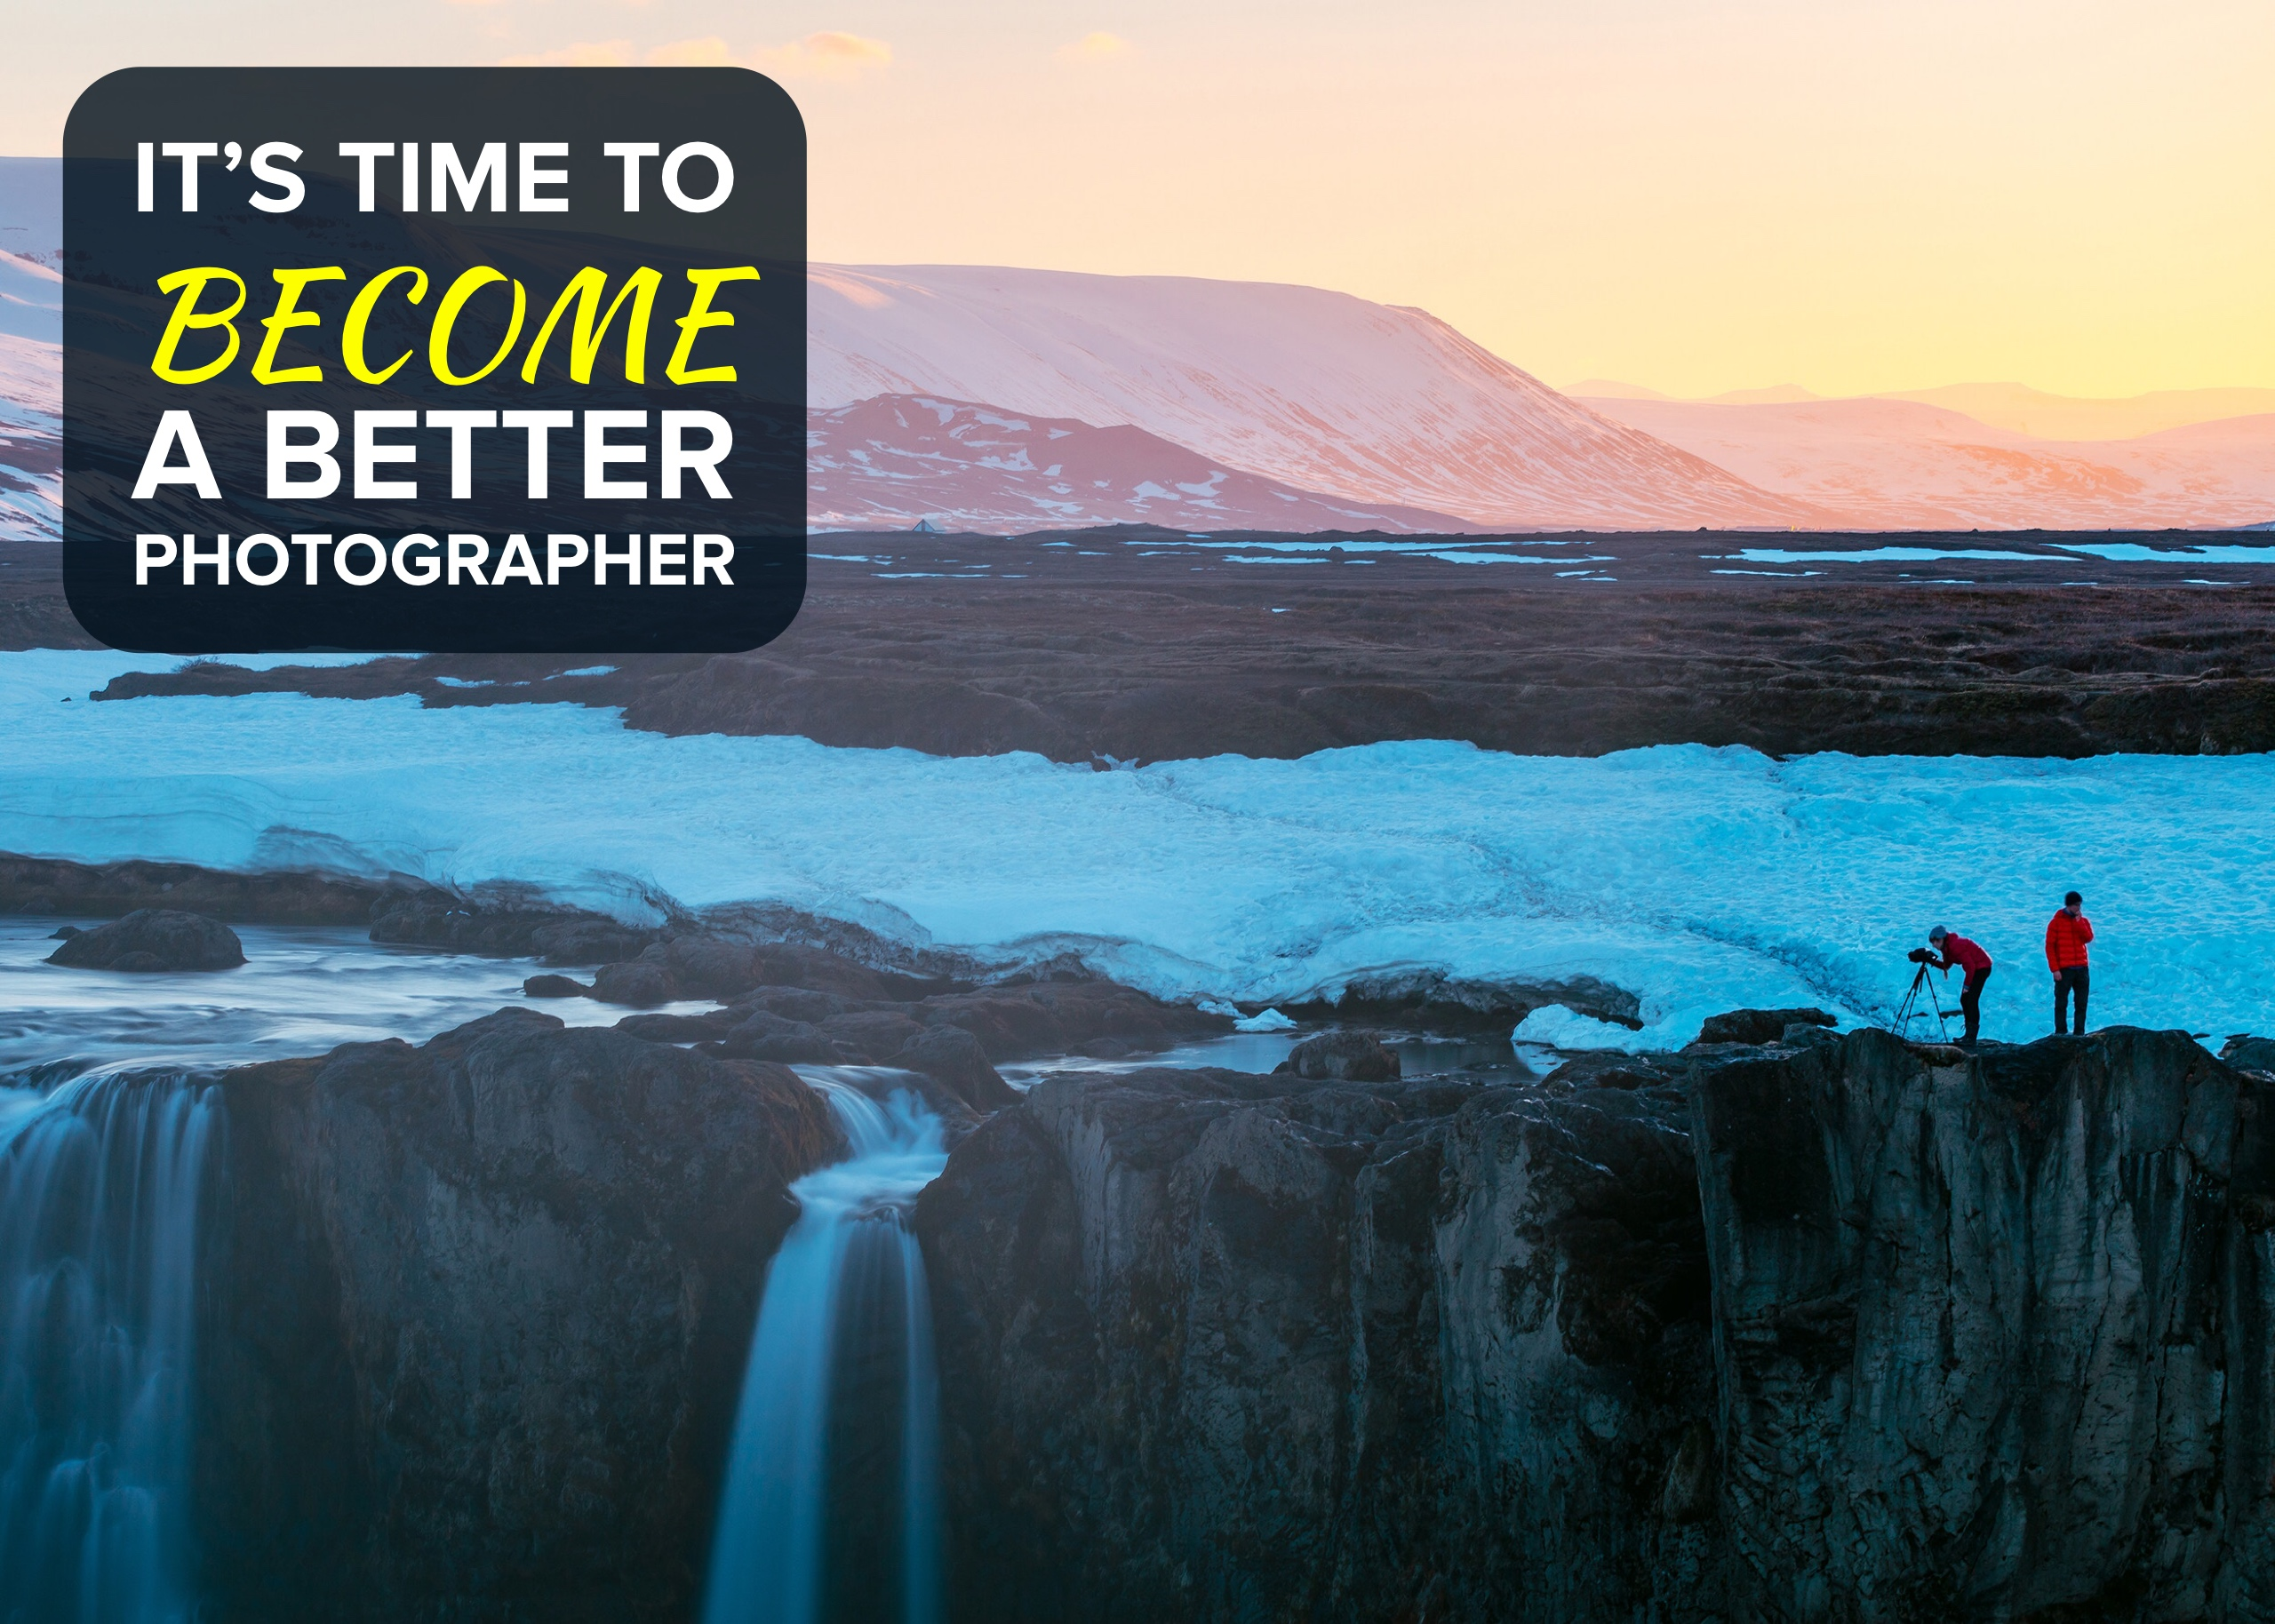 It's Time to BECOME a Better Photographer